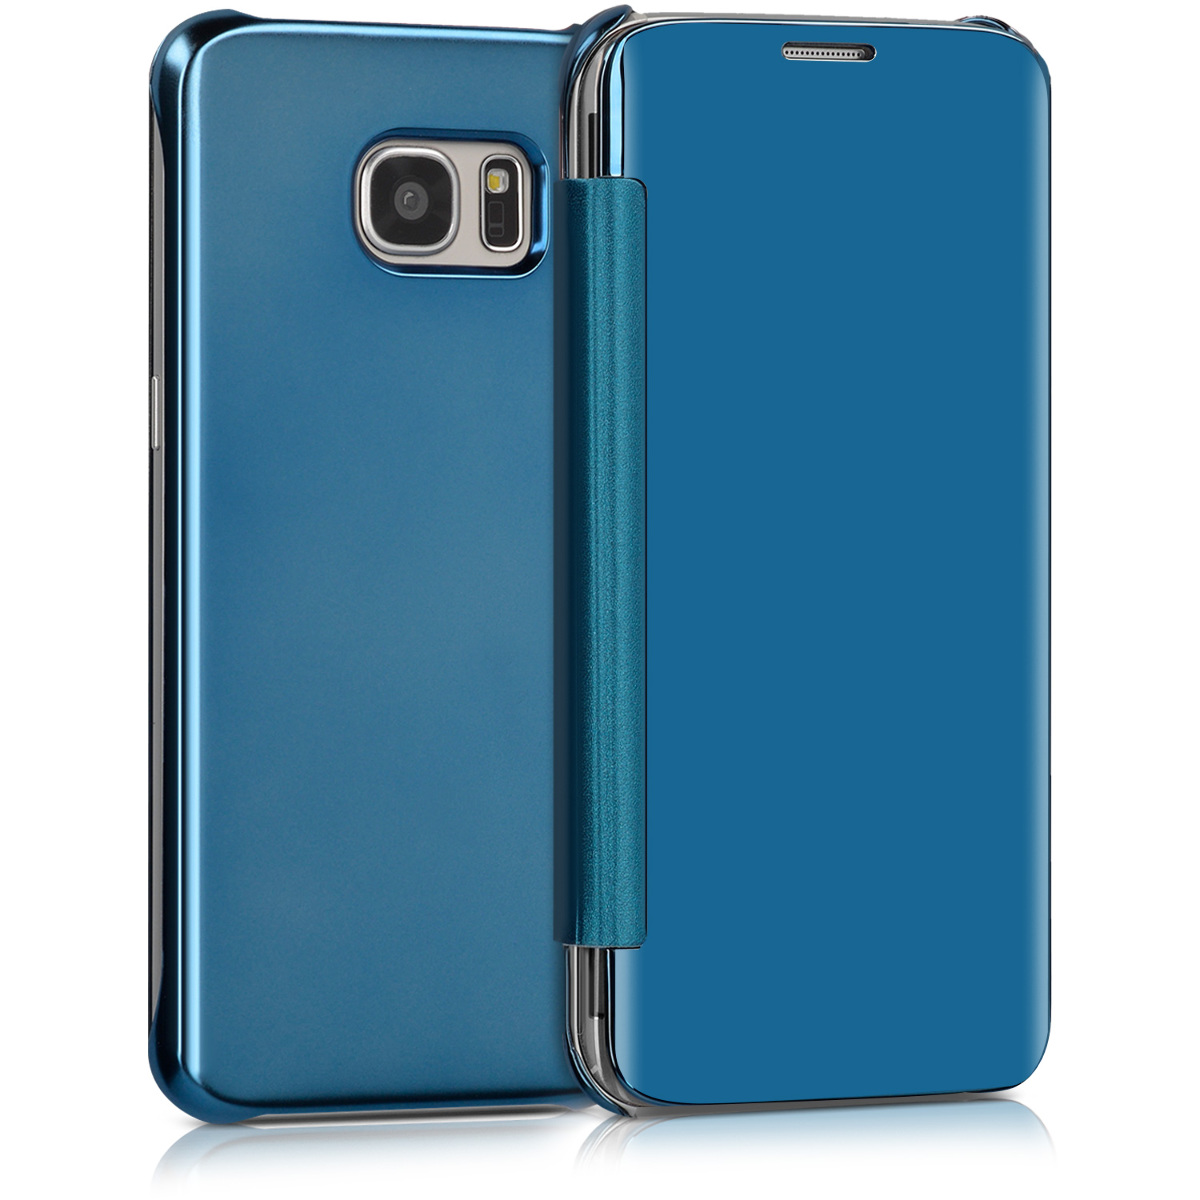 spiegel flip case f r samsung galaxy s7 edge blau schutzh lle klapp h lle cover ebay. Black Bedroom Furniture Sets. Home Design Ideas